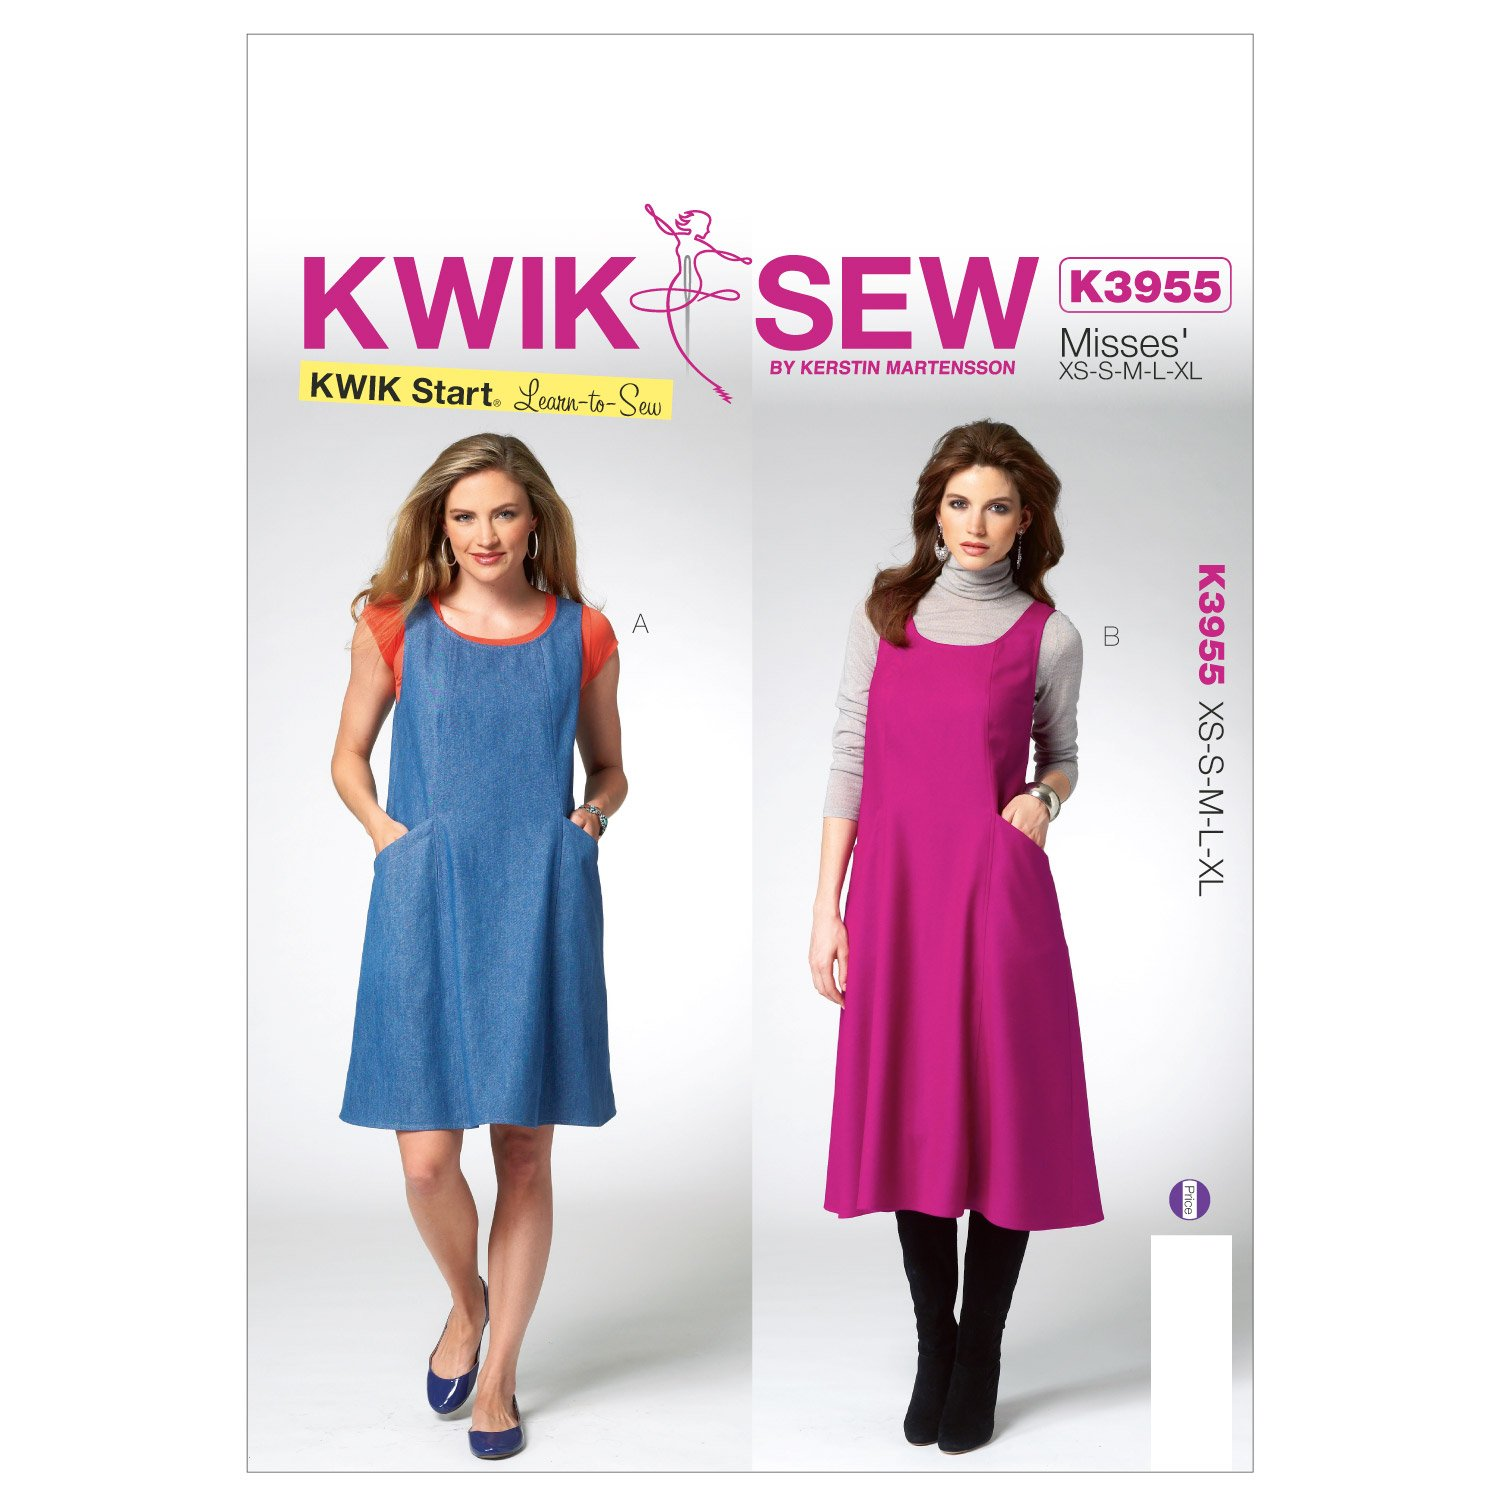 Amazon.com: Kwik Sew Patterns K3955 Misses Jumper Sewing Template ...